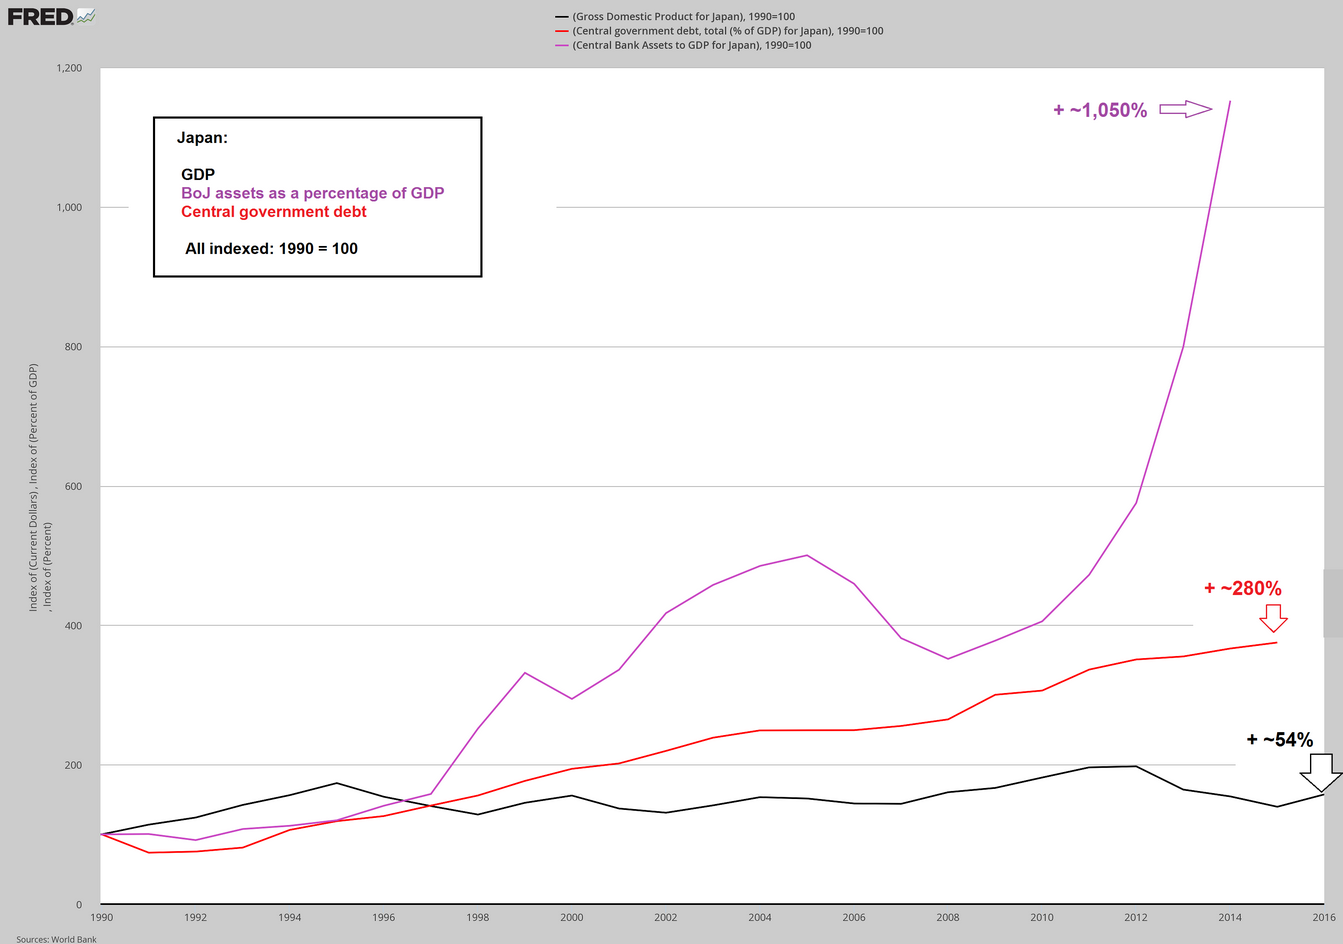 Japan GDP, BoJ assets as a percentage of GDP, Central Goverment Debt compared